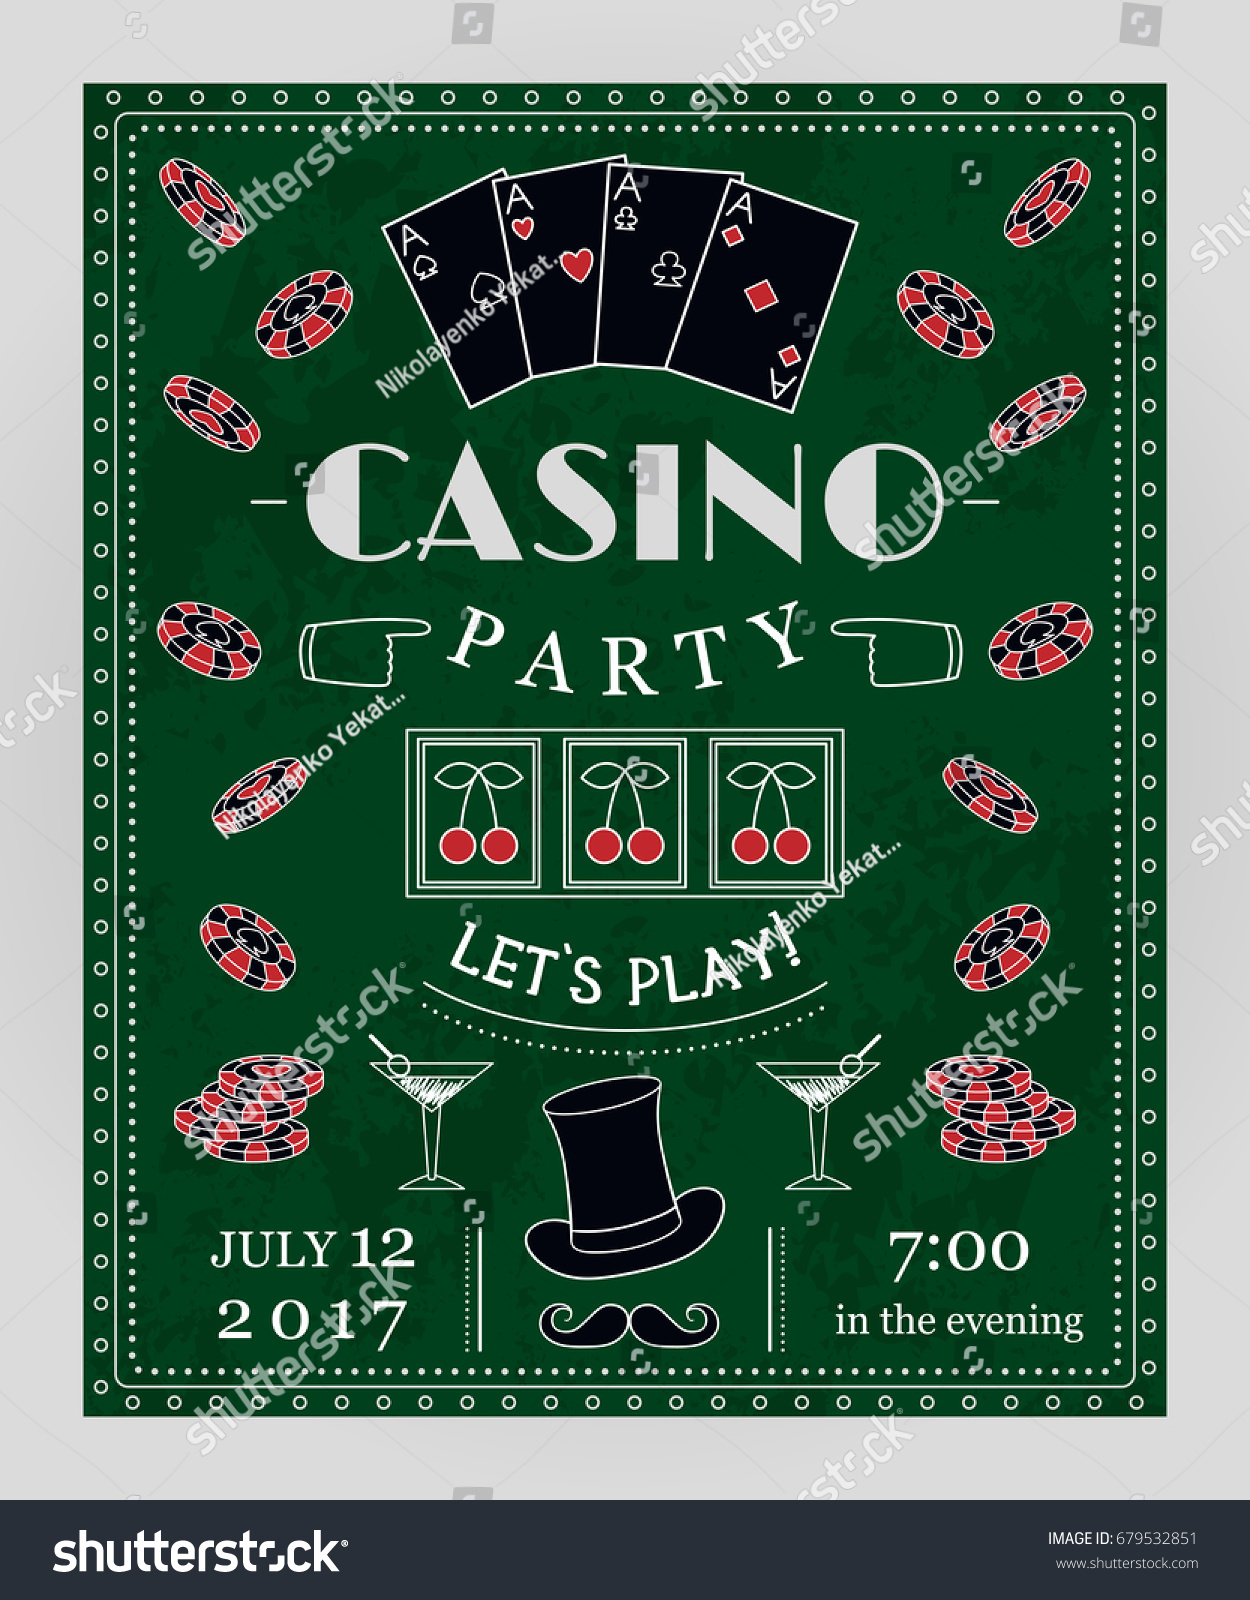 Casino Royale Theme Party Invitations Images - Party Invitations Ideas